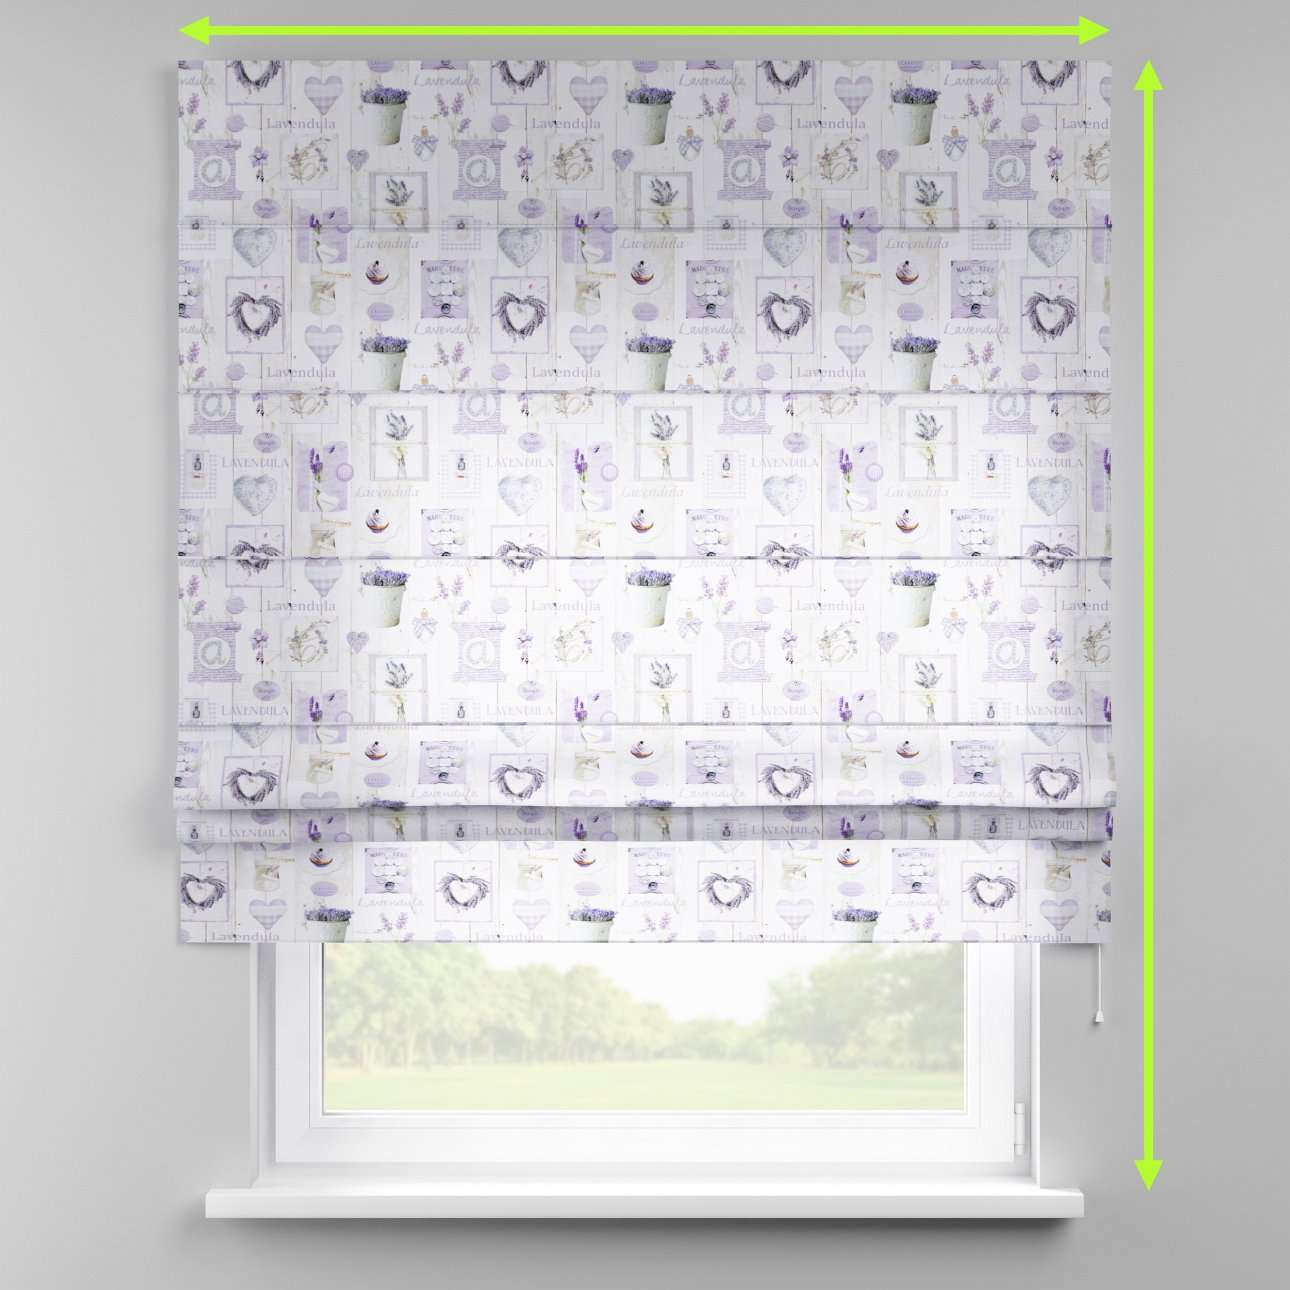 Padva roman blind  in collection Ashley, fabric: 140-18